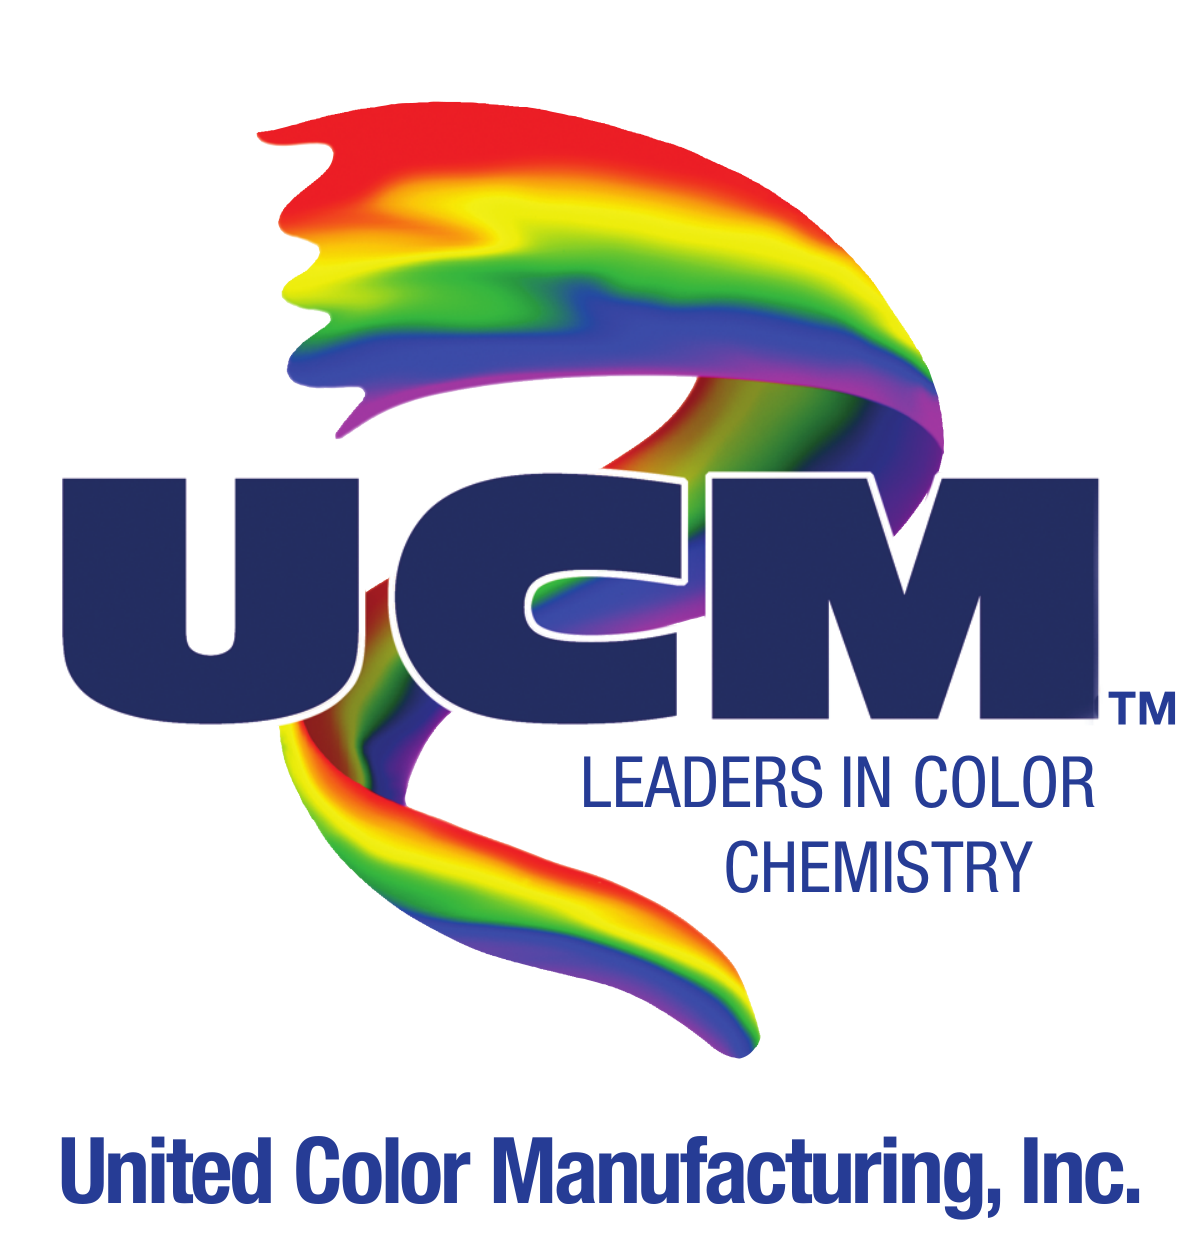 United Color